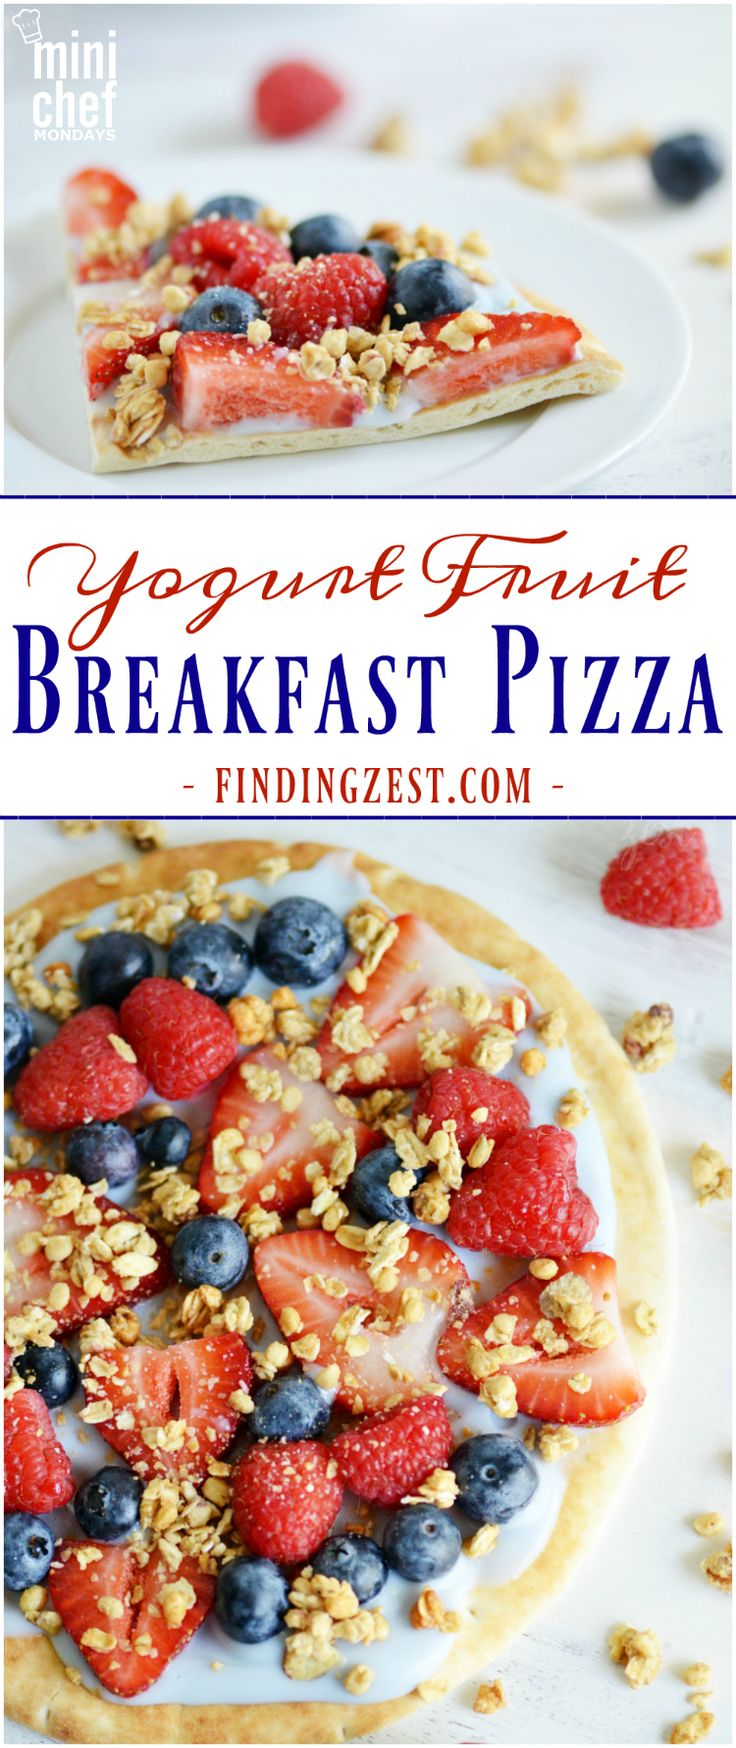 Yogurt Fruit Breakfast Pizza- Give this kid friendly yogurt fruit breakfast pizza recipe a try! This no bake breakfast pizza requires only a few simple ingredients and tastes so good!